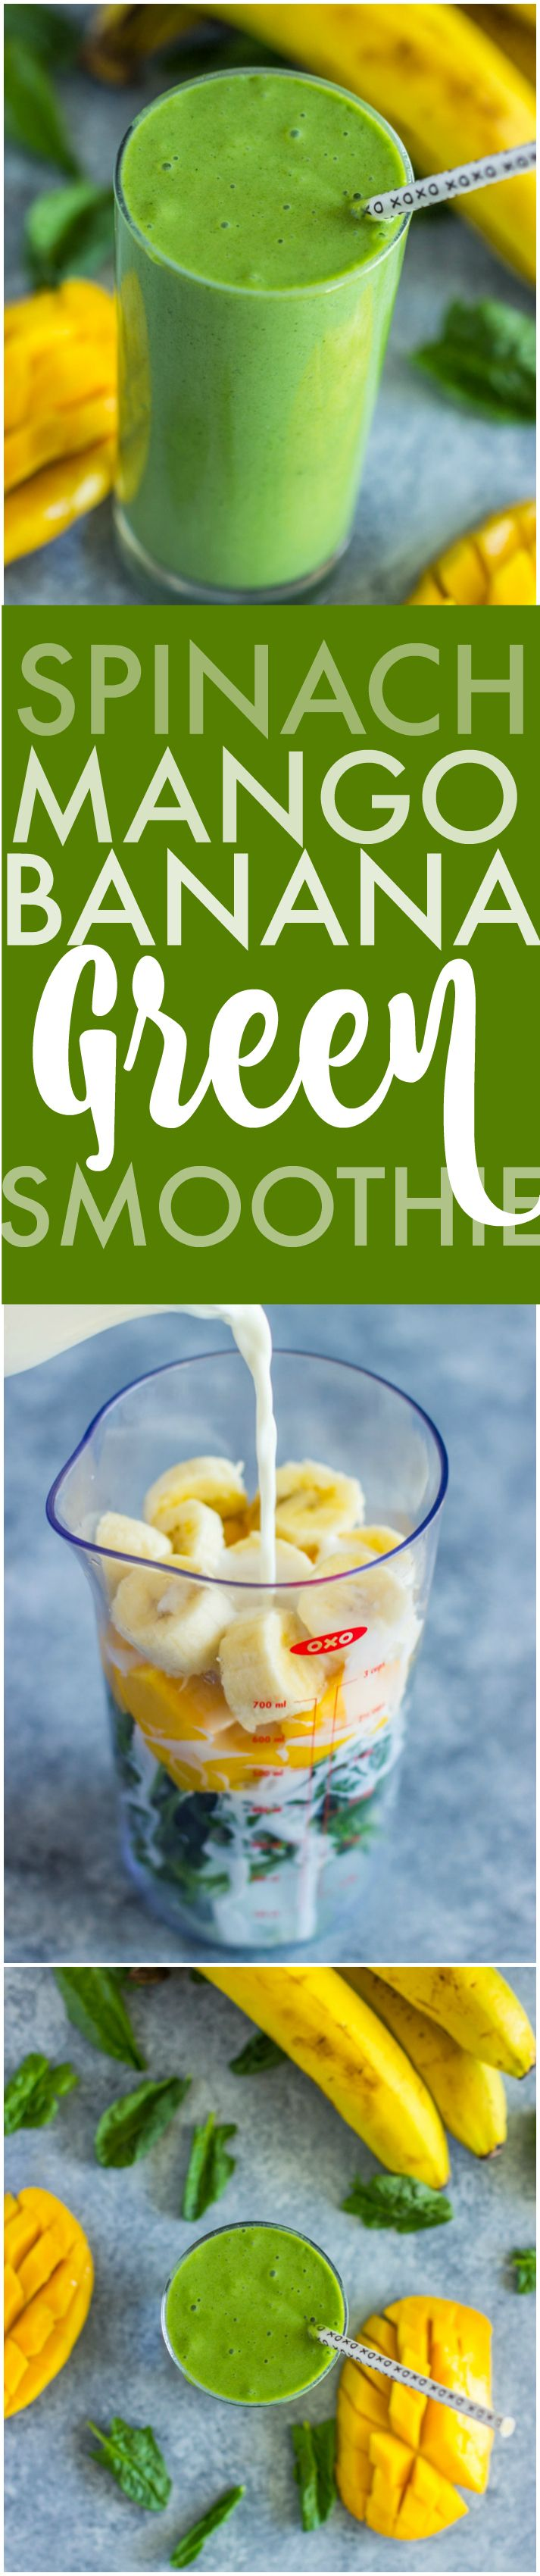 4 ingredient Spinach Mango Banana Green Smoothie